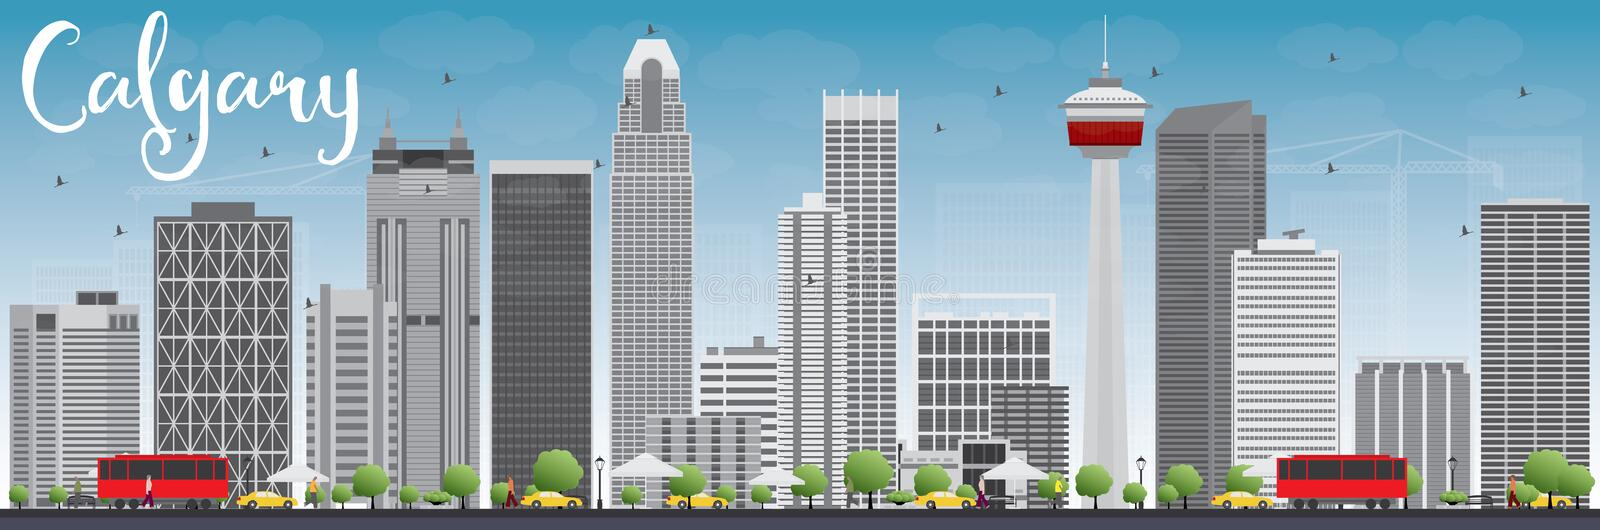 Calgary Skyline with Gray Buildings and Blue Sky. Vector Illustration. Business travel and tourism concept with modern buildings. Image for presentation vector illustration